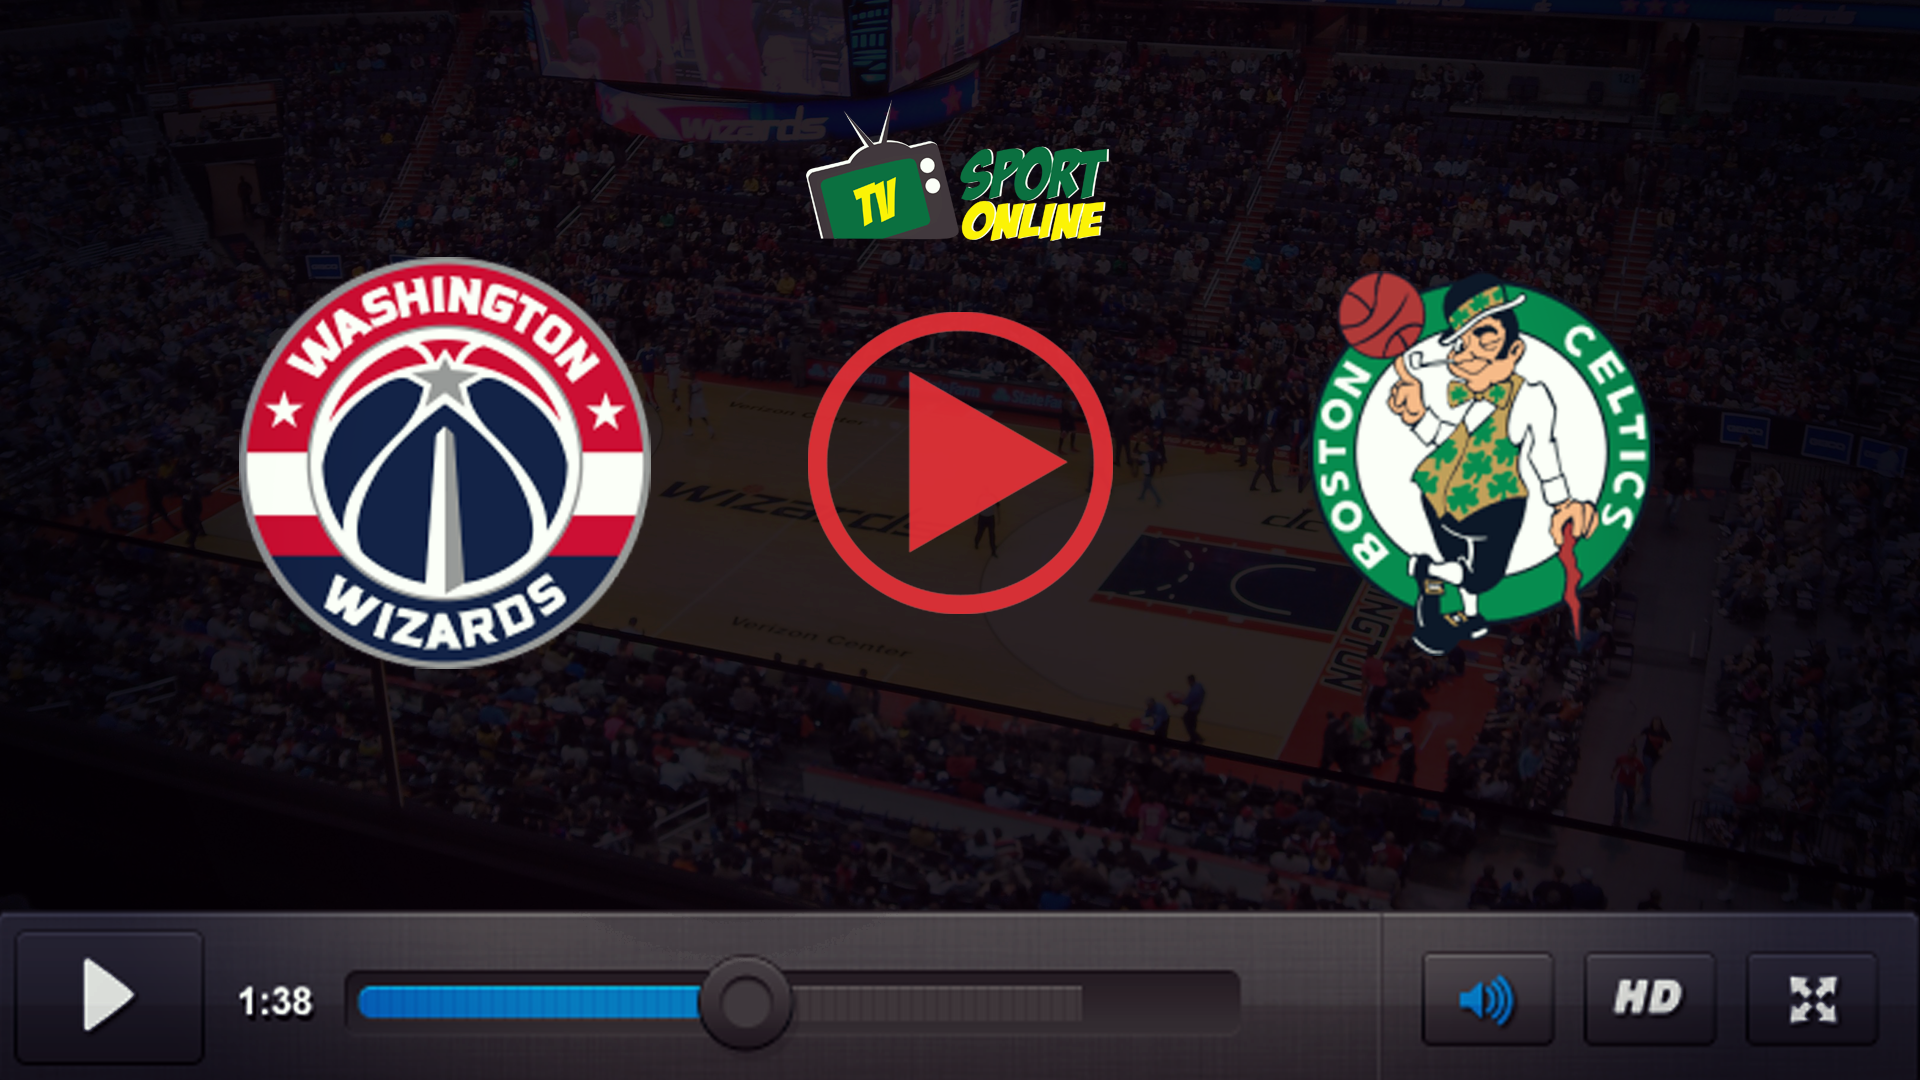 Watch Live Stream Washington Wizards – Boston Celtics